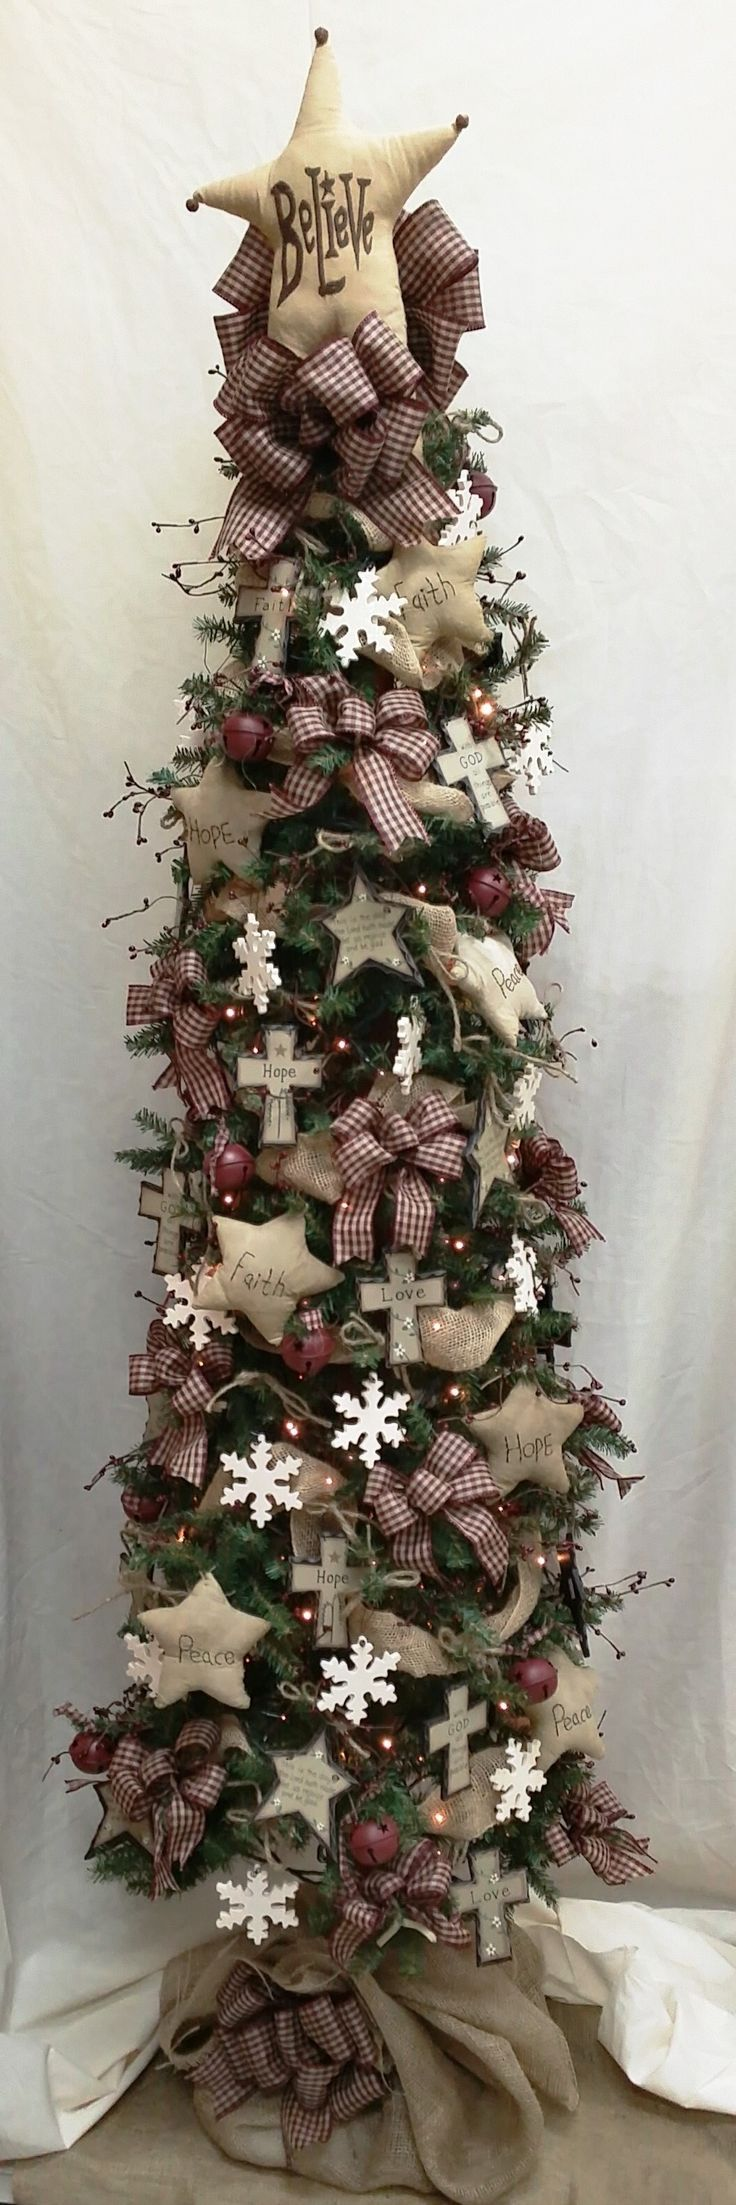 Primitive christmas ideas to make - Get Into The Christmas Season With Our Unique Primitive Star Christmas Tree Love The Country Look This Tree Is Perfect For You